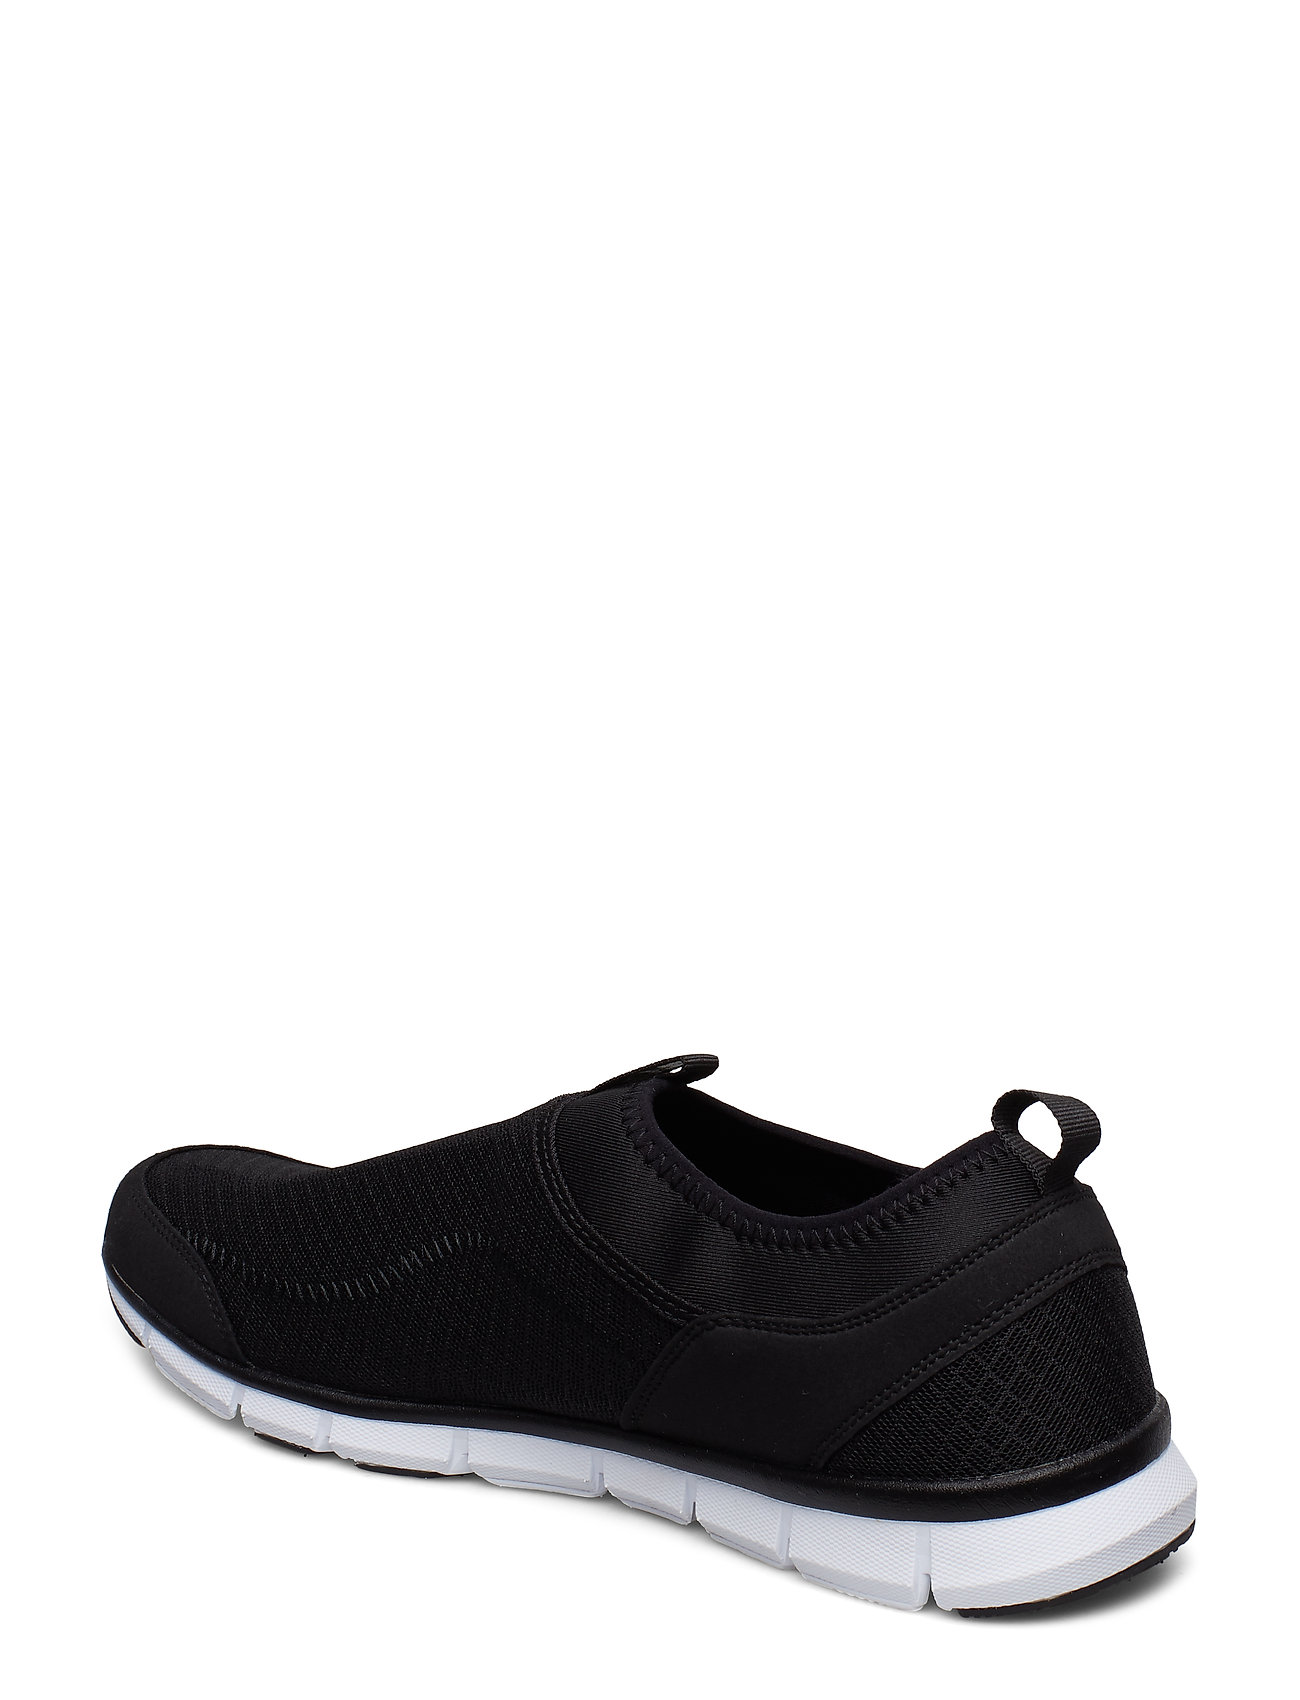 Halti Lente Men's Leisure Shoes - Sportskor Black